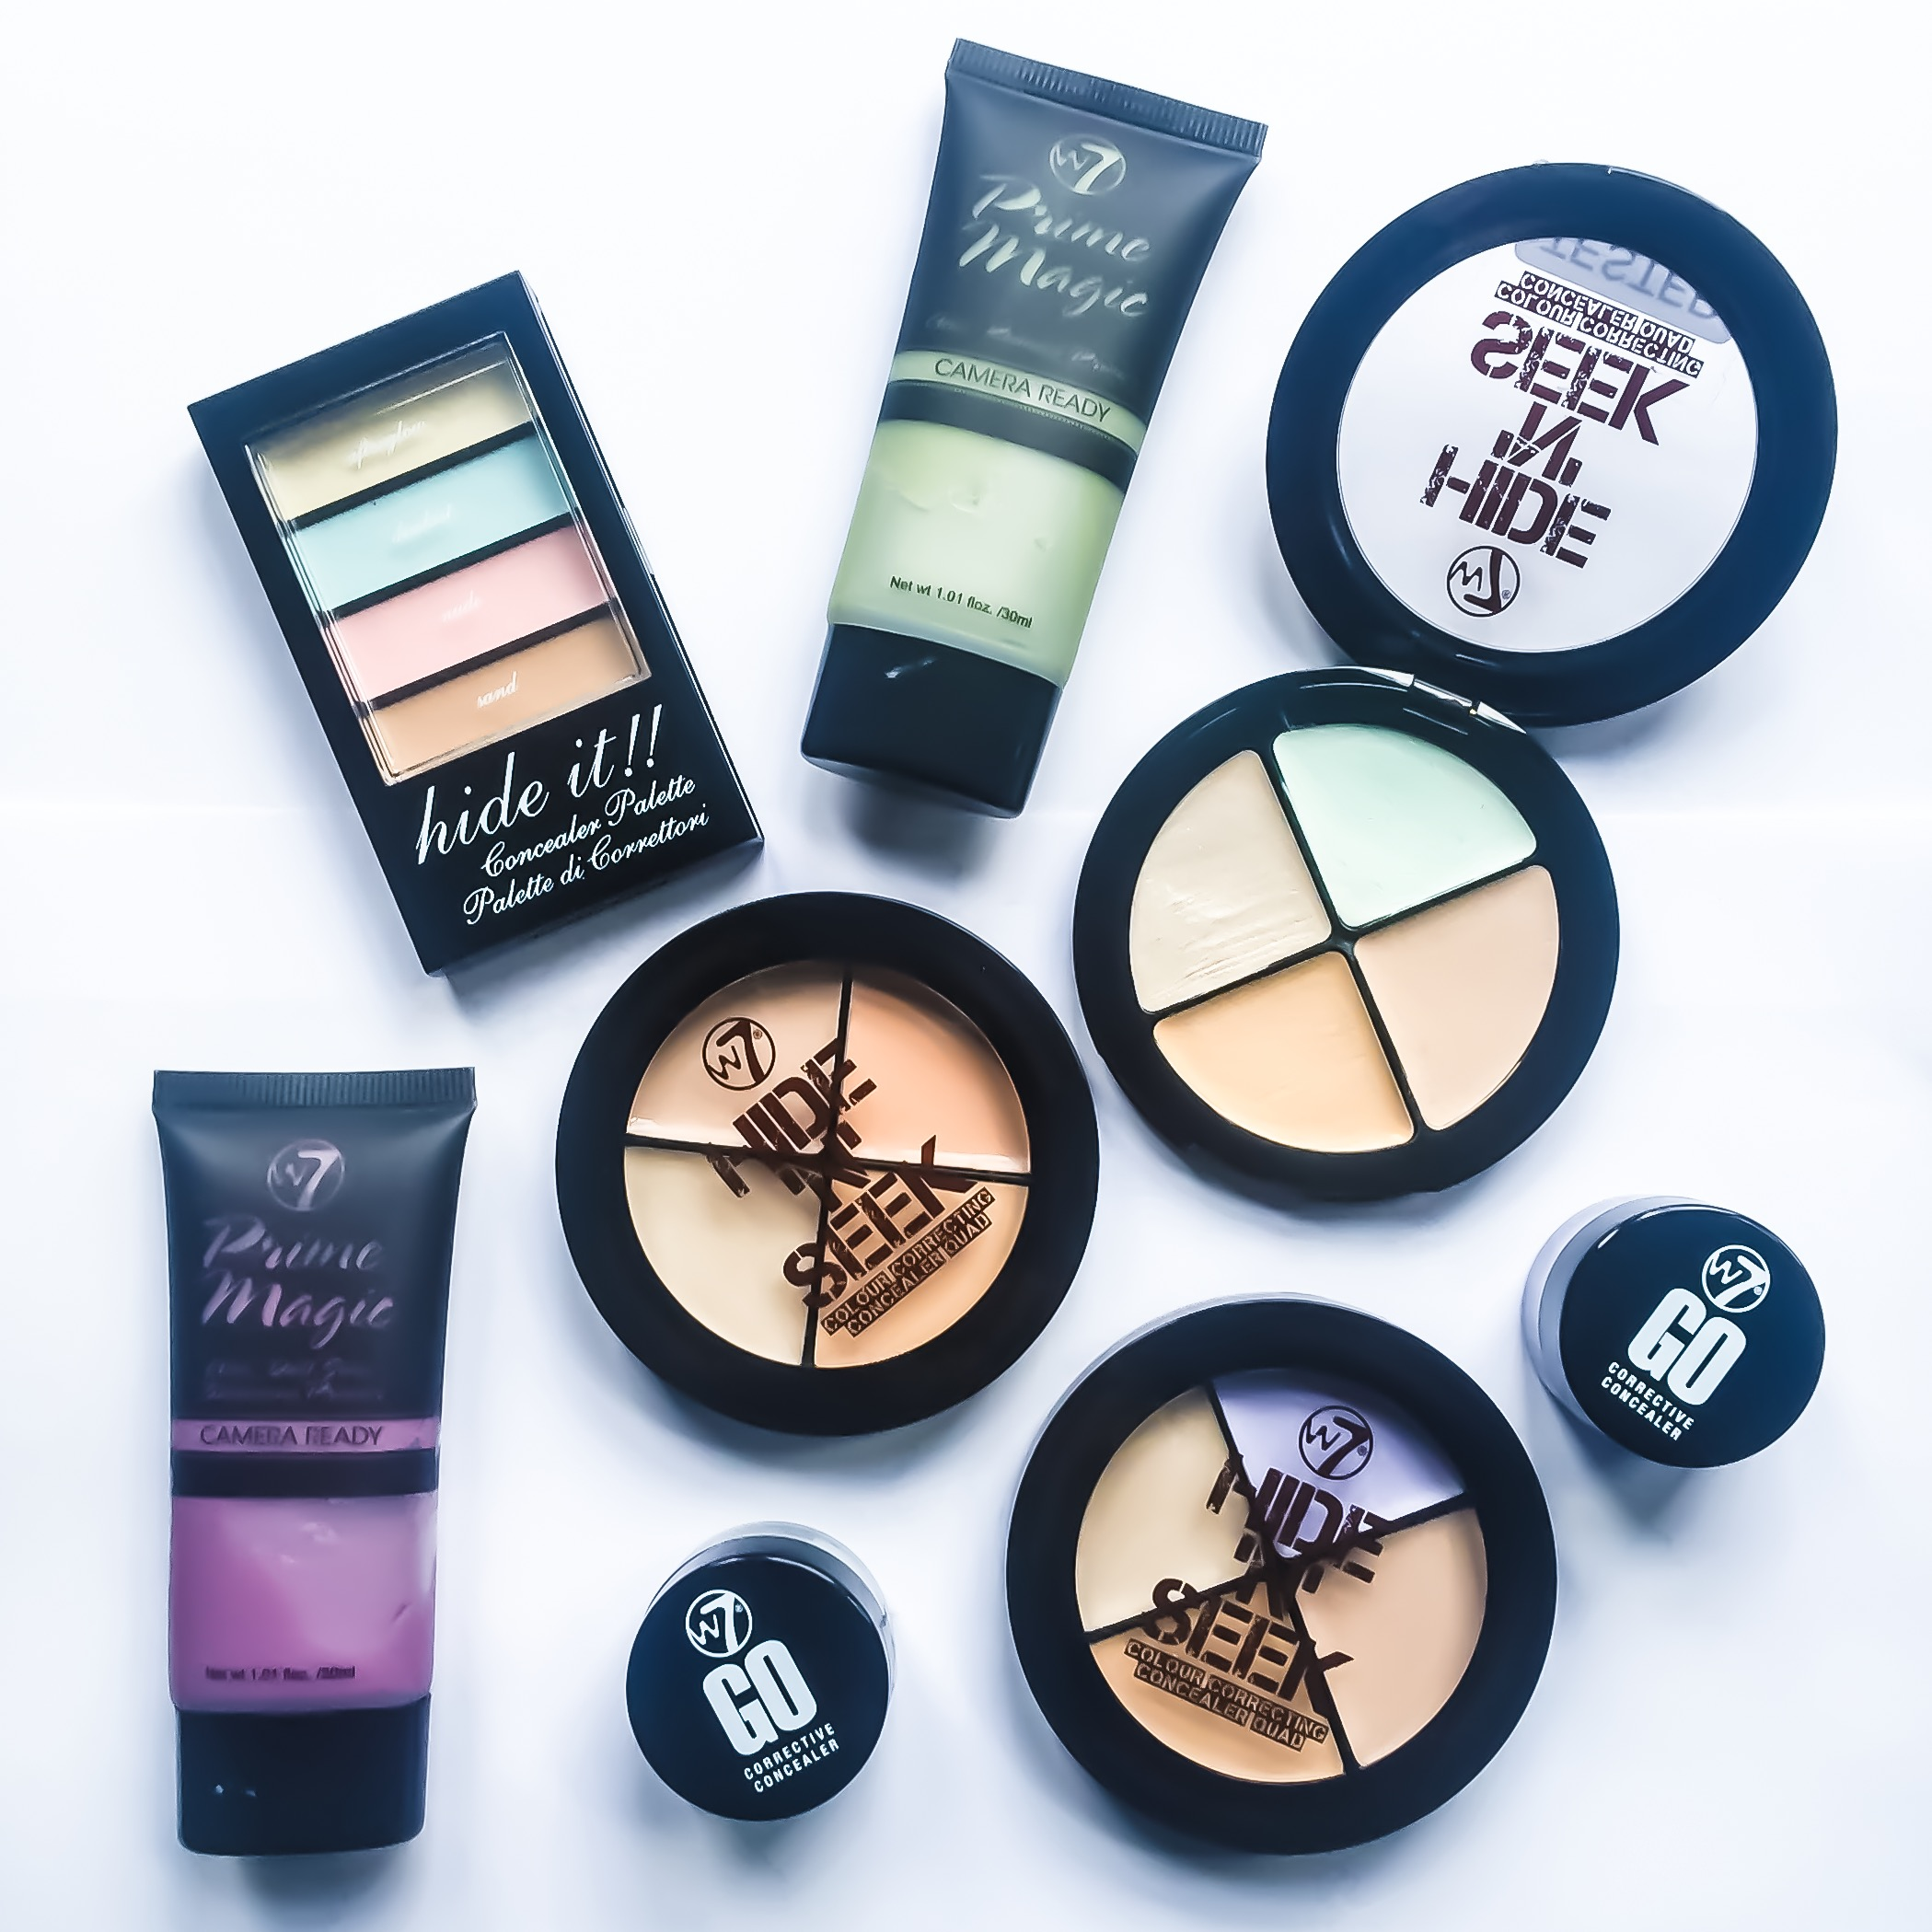 Colour Correctors – W7 Hide and Seek